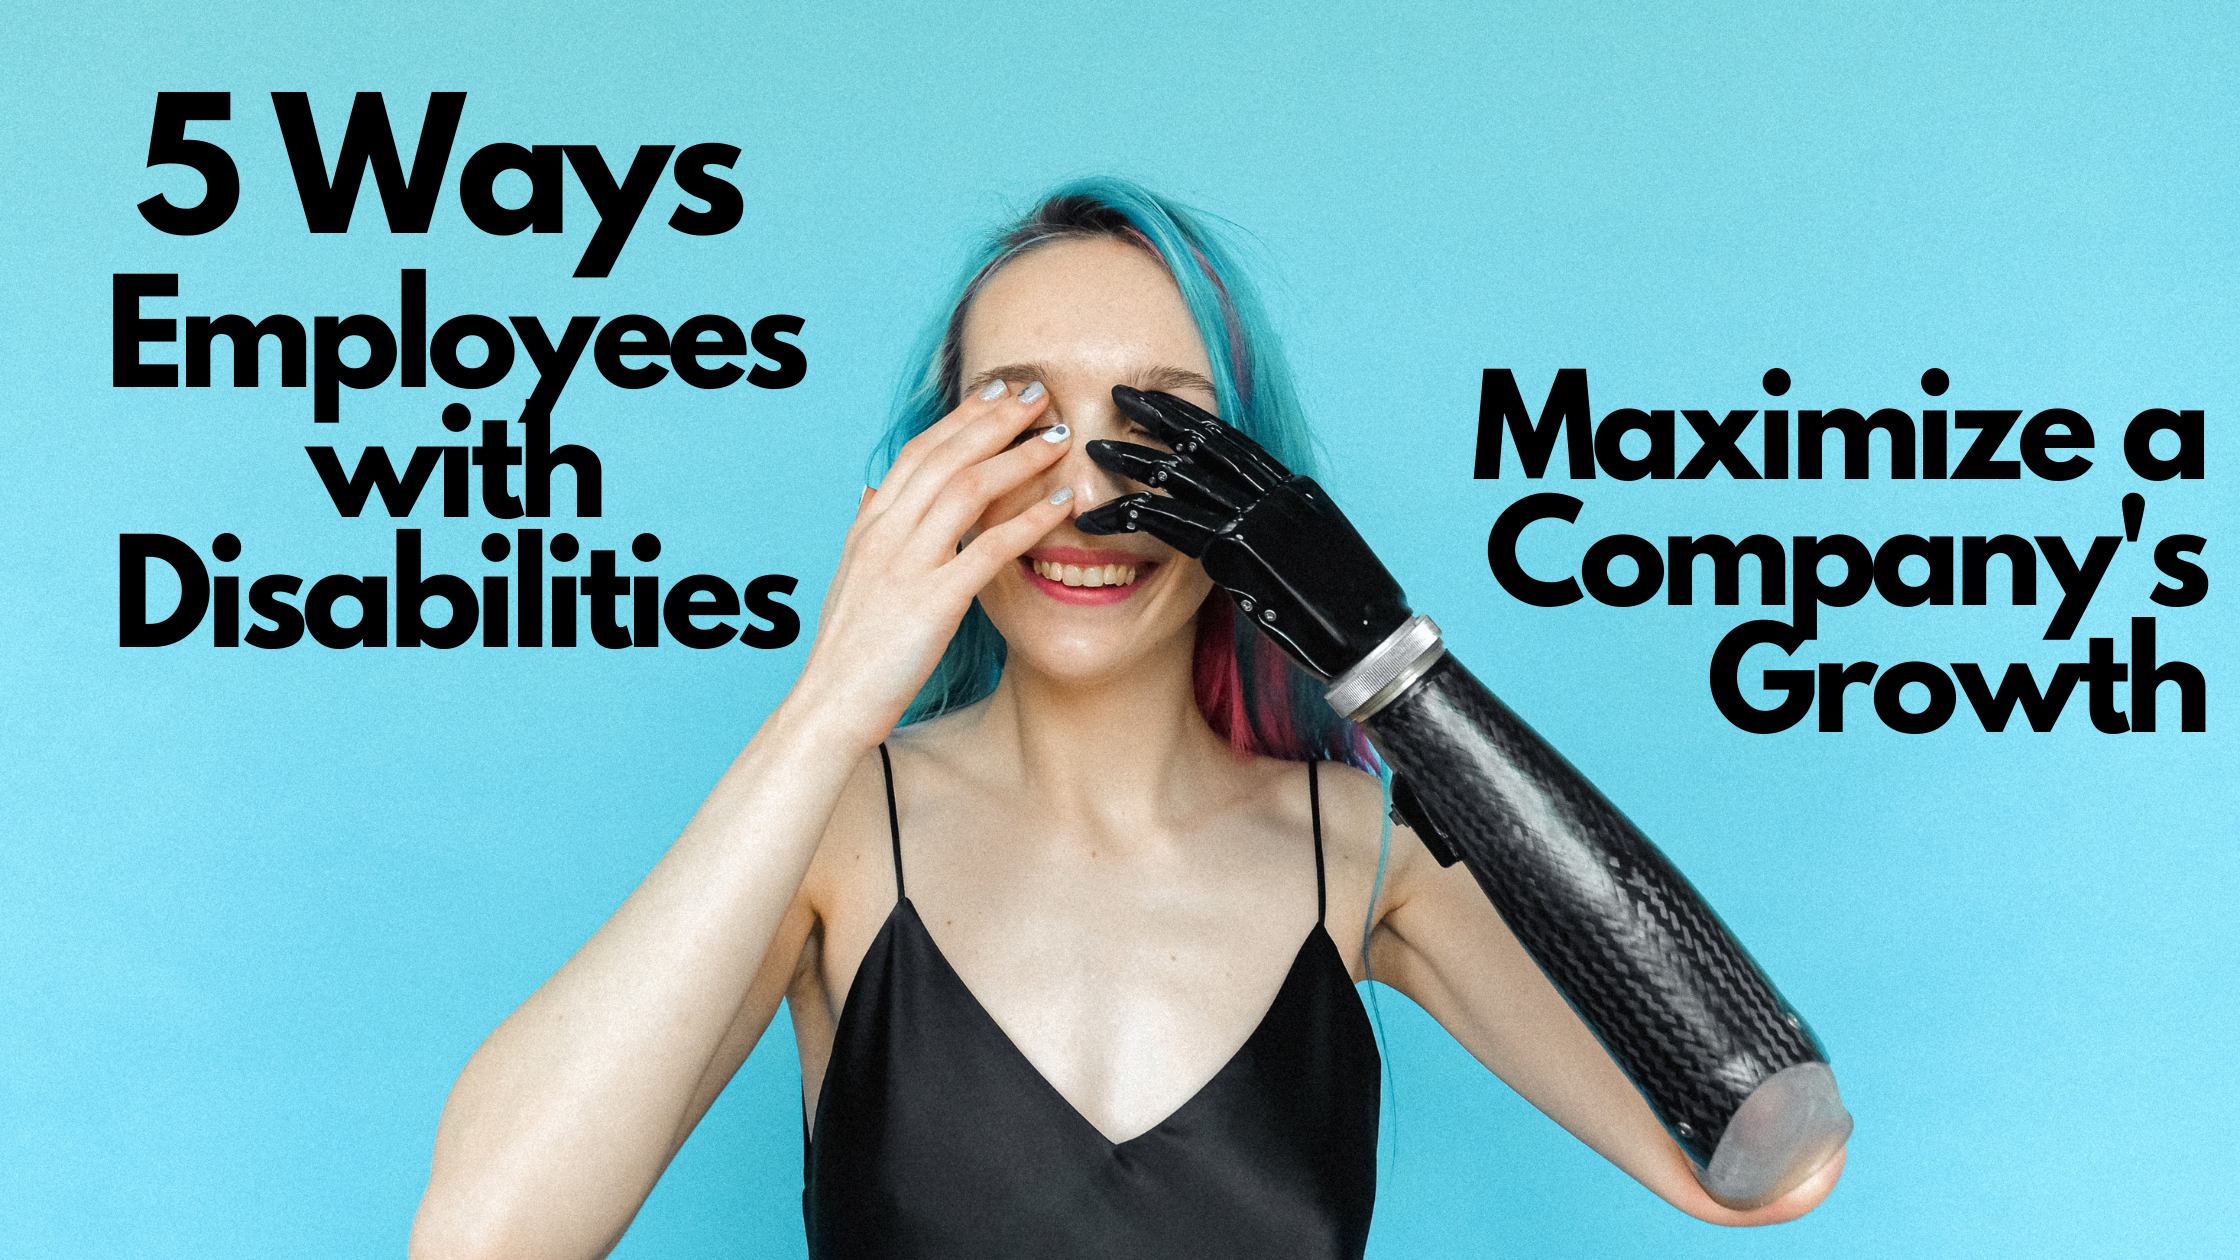 5 Ways Employees with Disabilities Maximize a Company's Growth